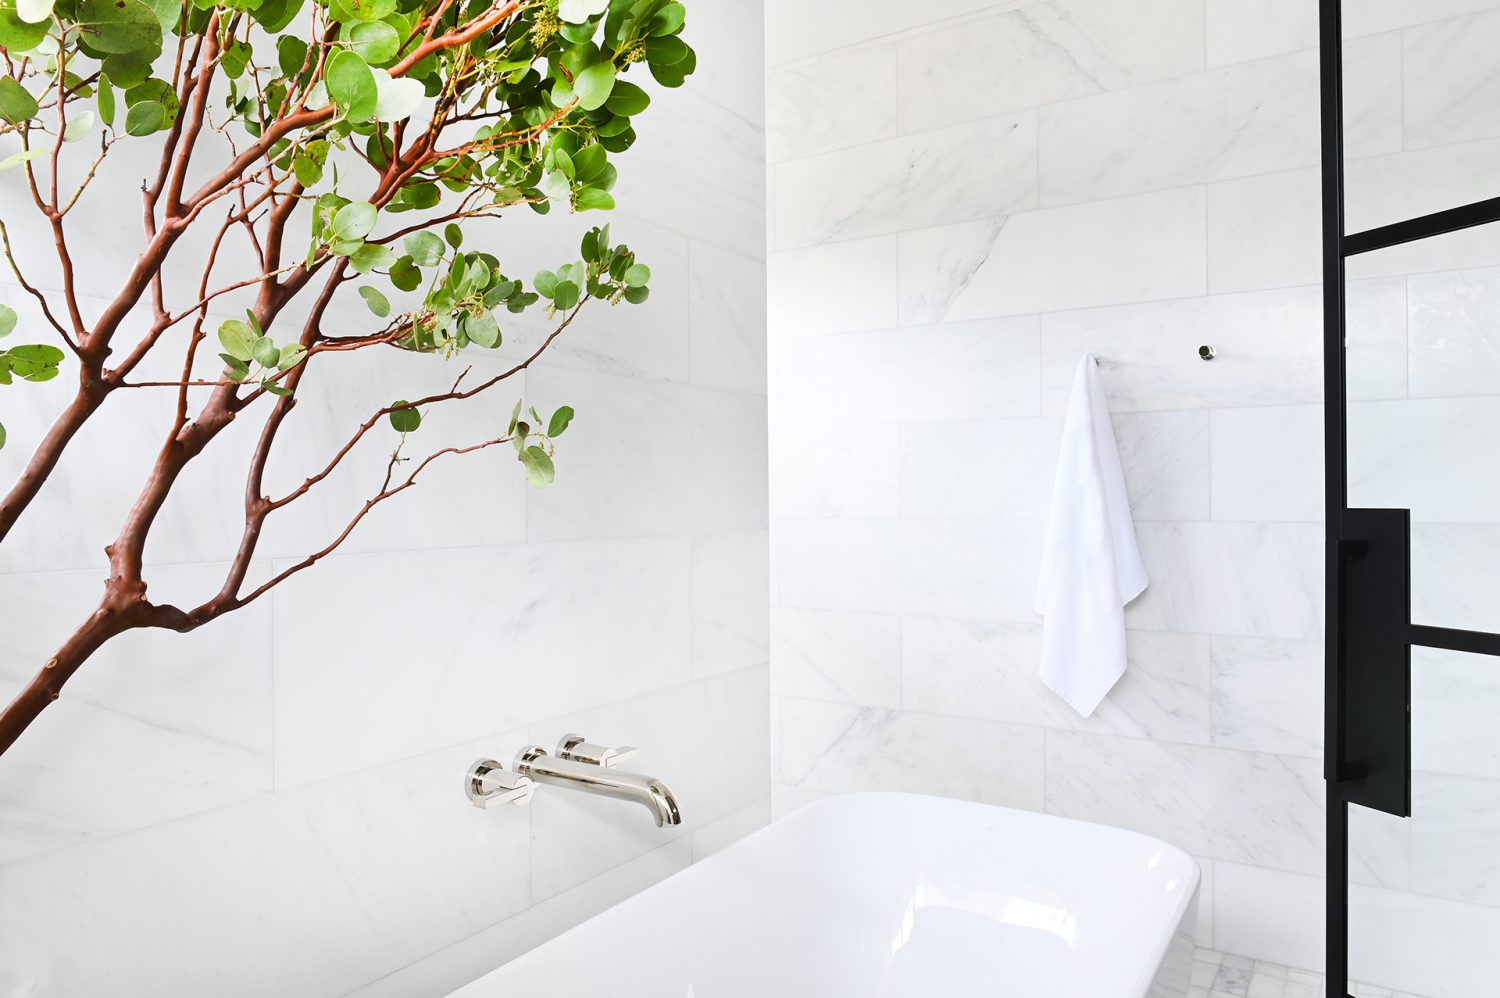 Ferme Moderne bath tub with marble backsplash and green tree designed by Midland Premium Properties in Vancouver, BC